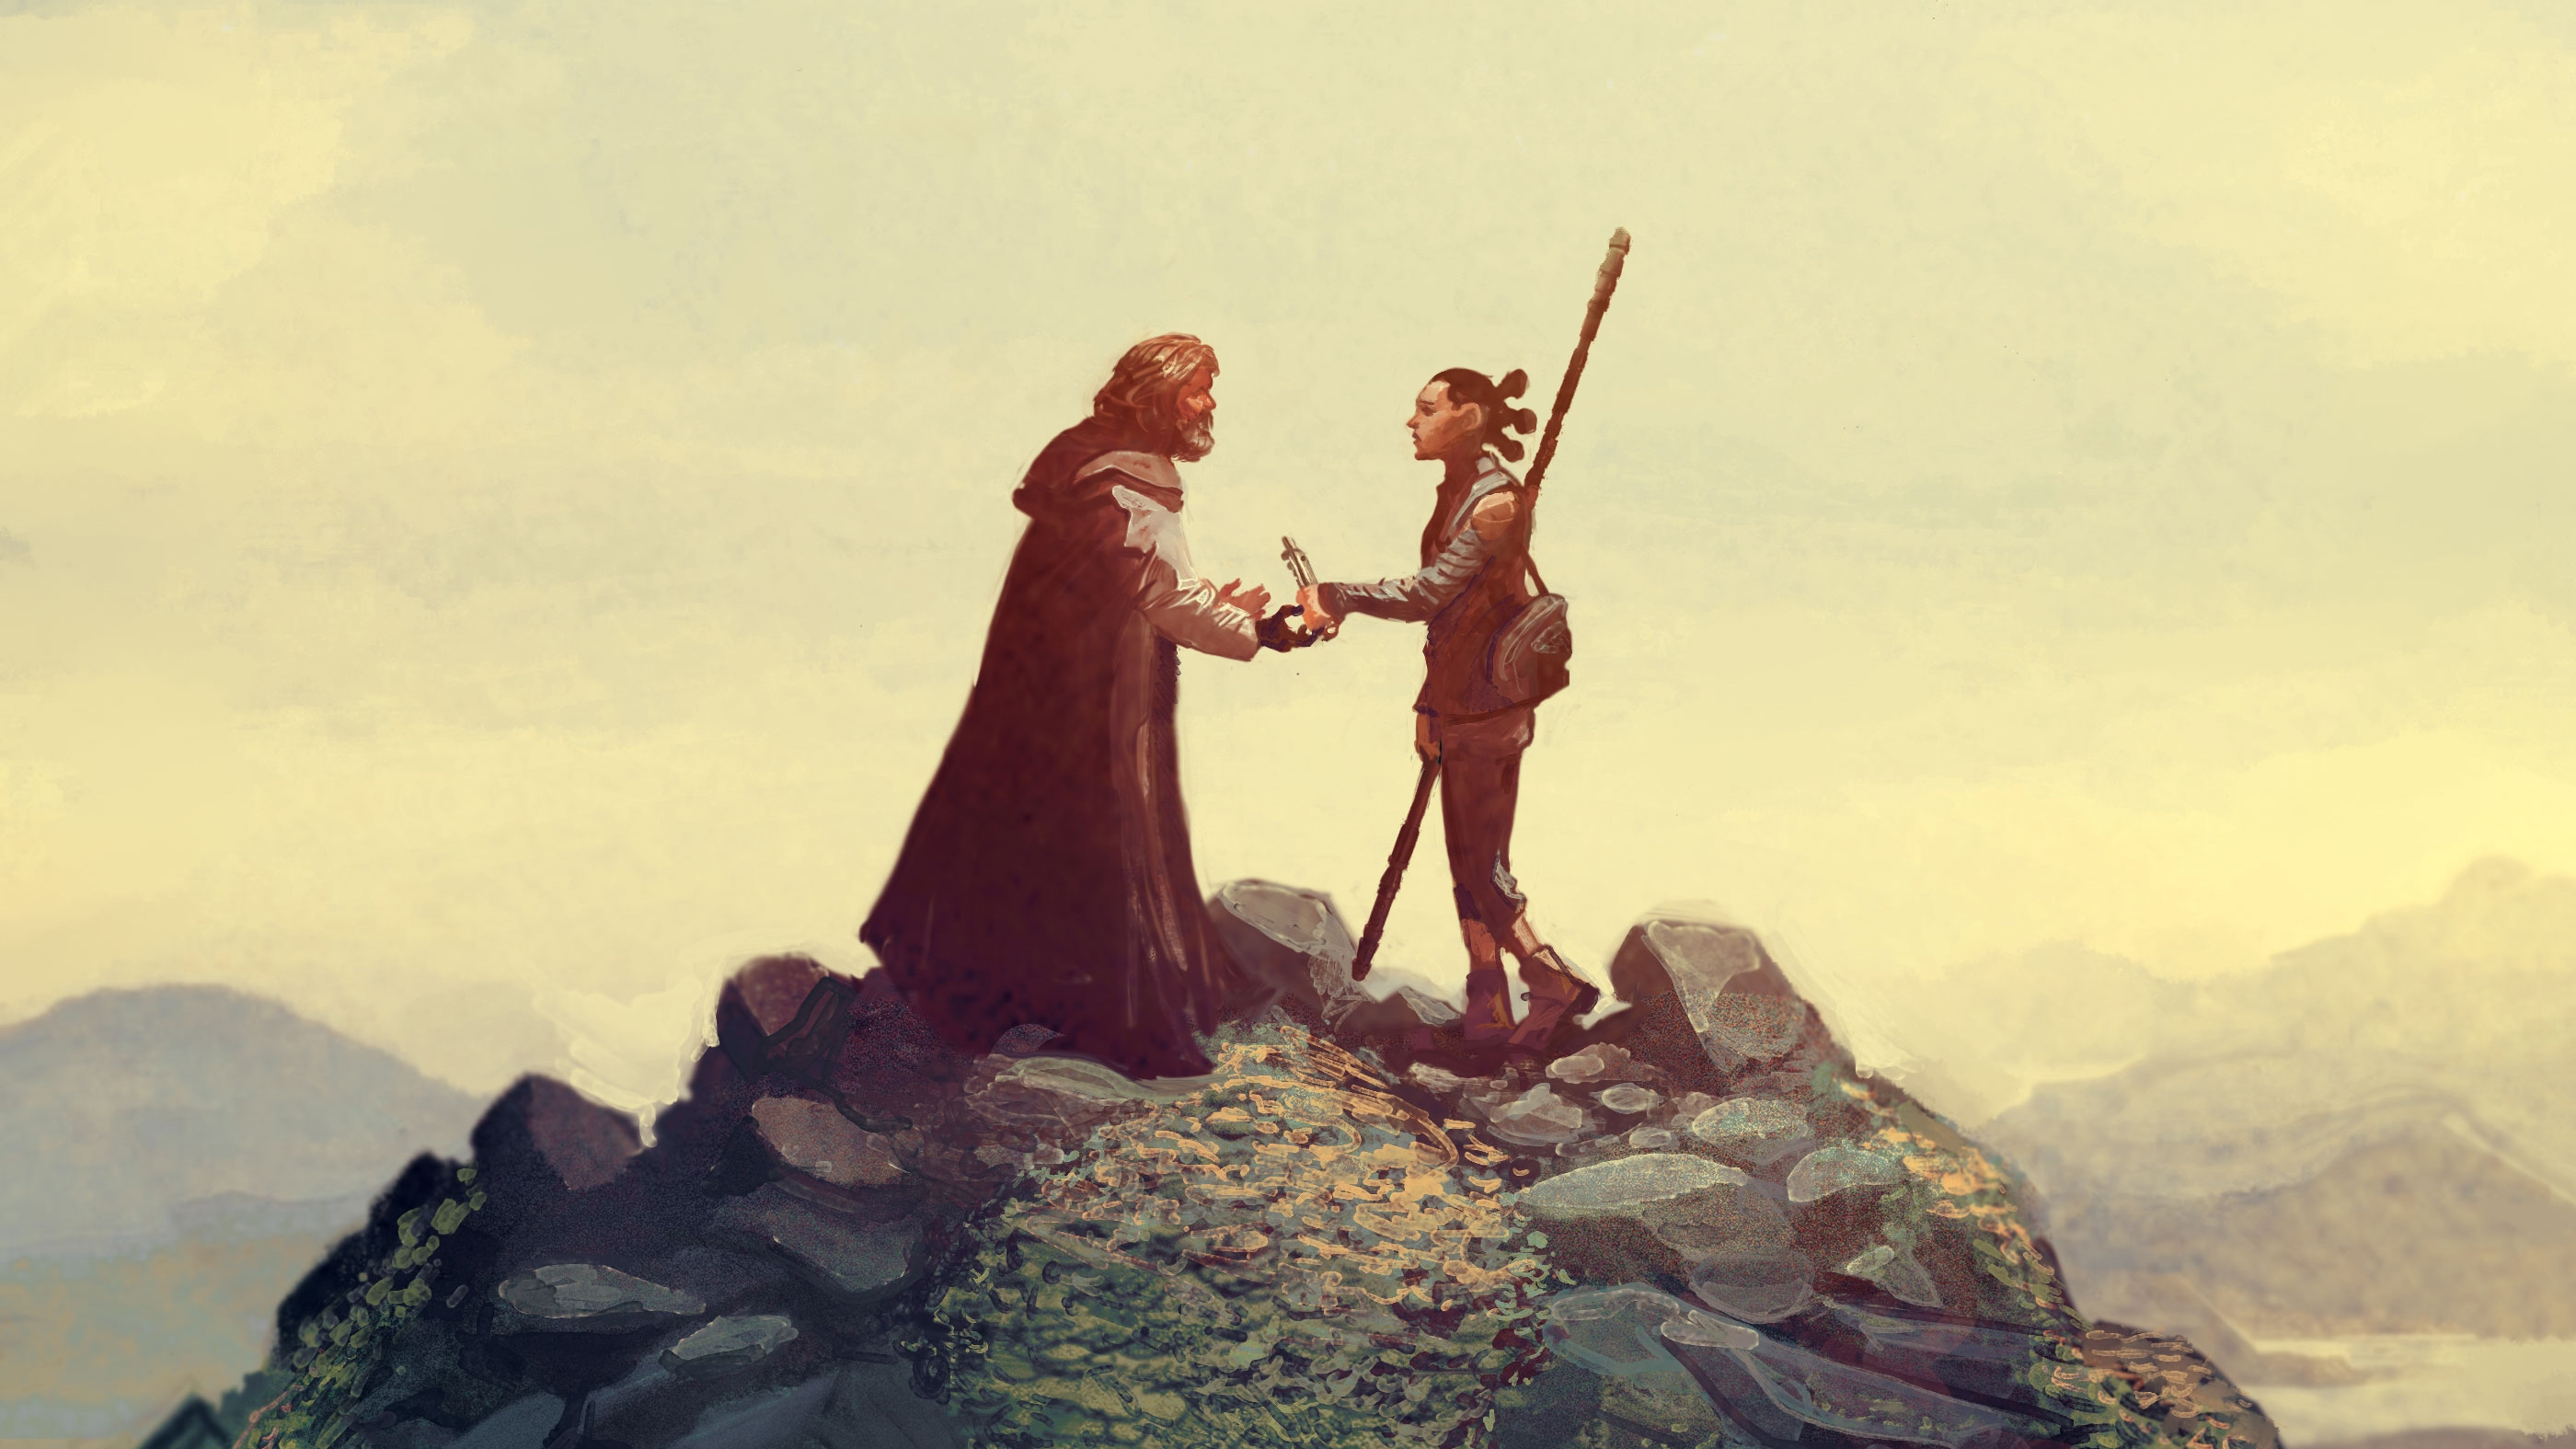 Star Wars The Last Jedi Fanart Hd Movies 4k Wallpapers Images Backgrounds Photos And Pictures